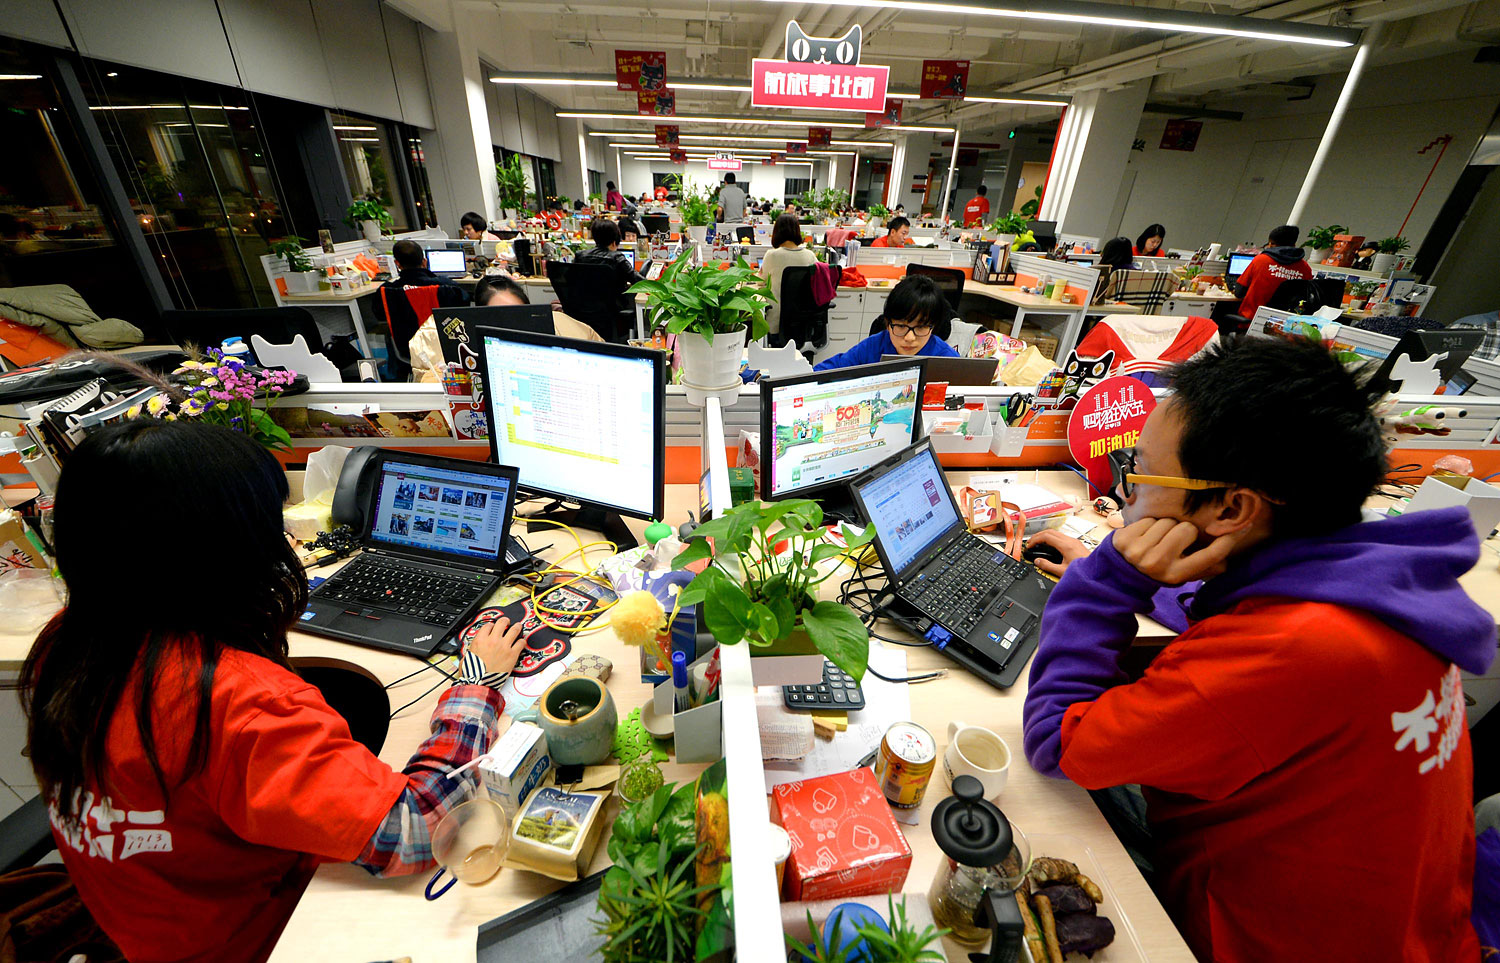 Employees at Alibaba Headquarters on Nov. 11, 2013 in Hangzhou, China.